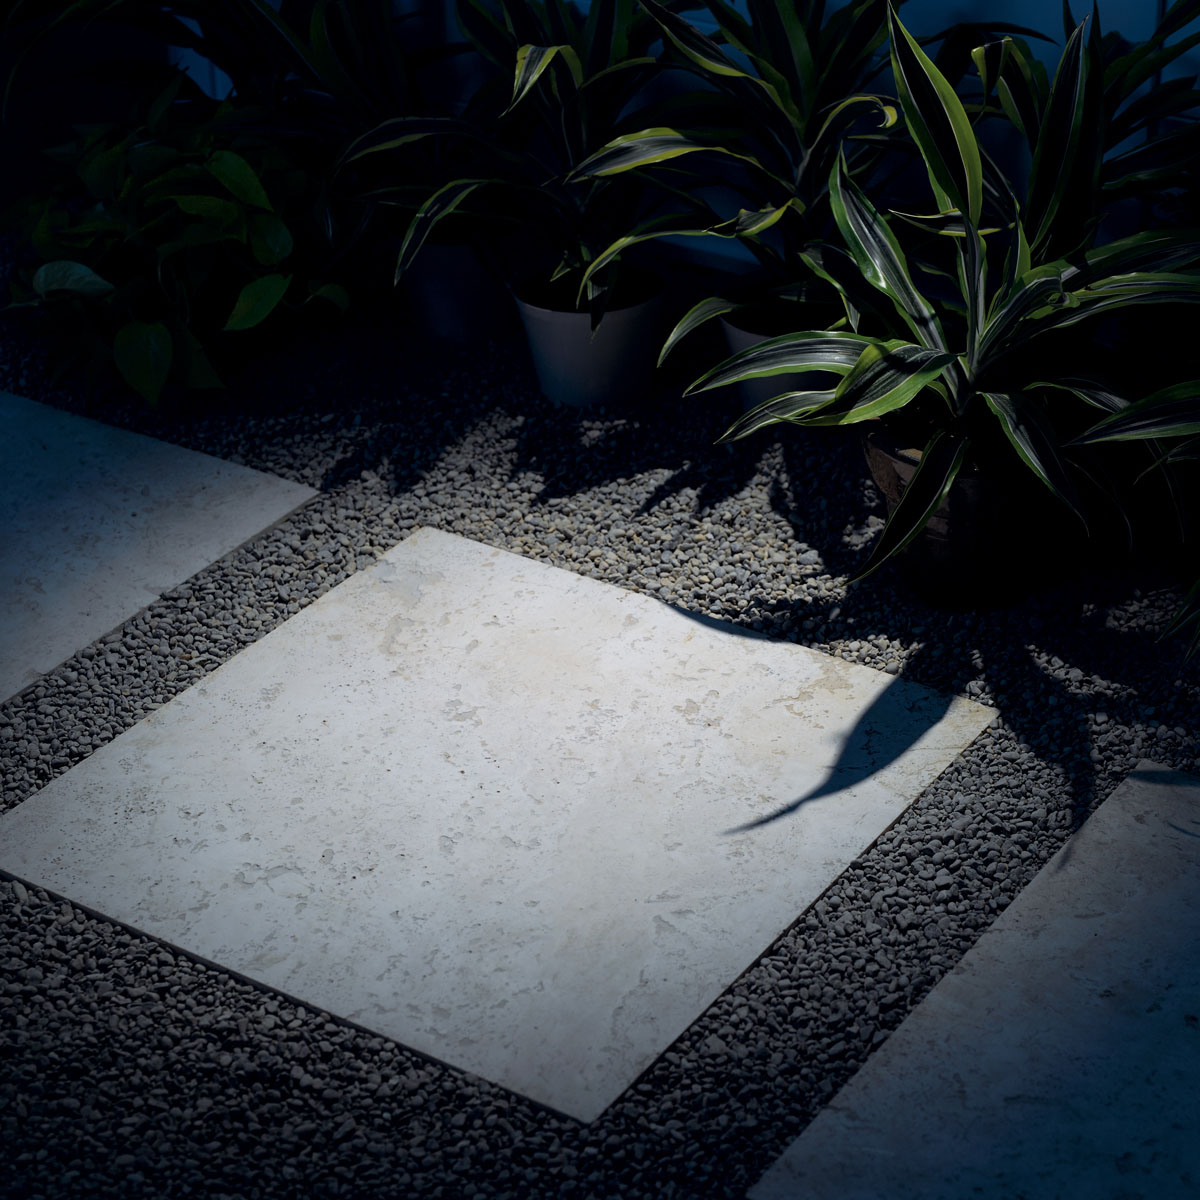 Cool White 4000 Kelvin Color Temperature for Landscae Design Tips